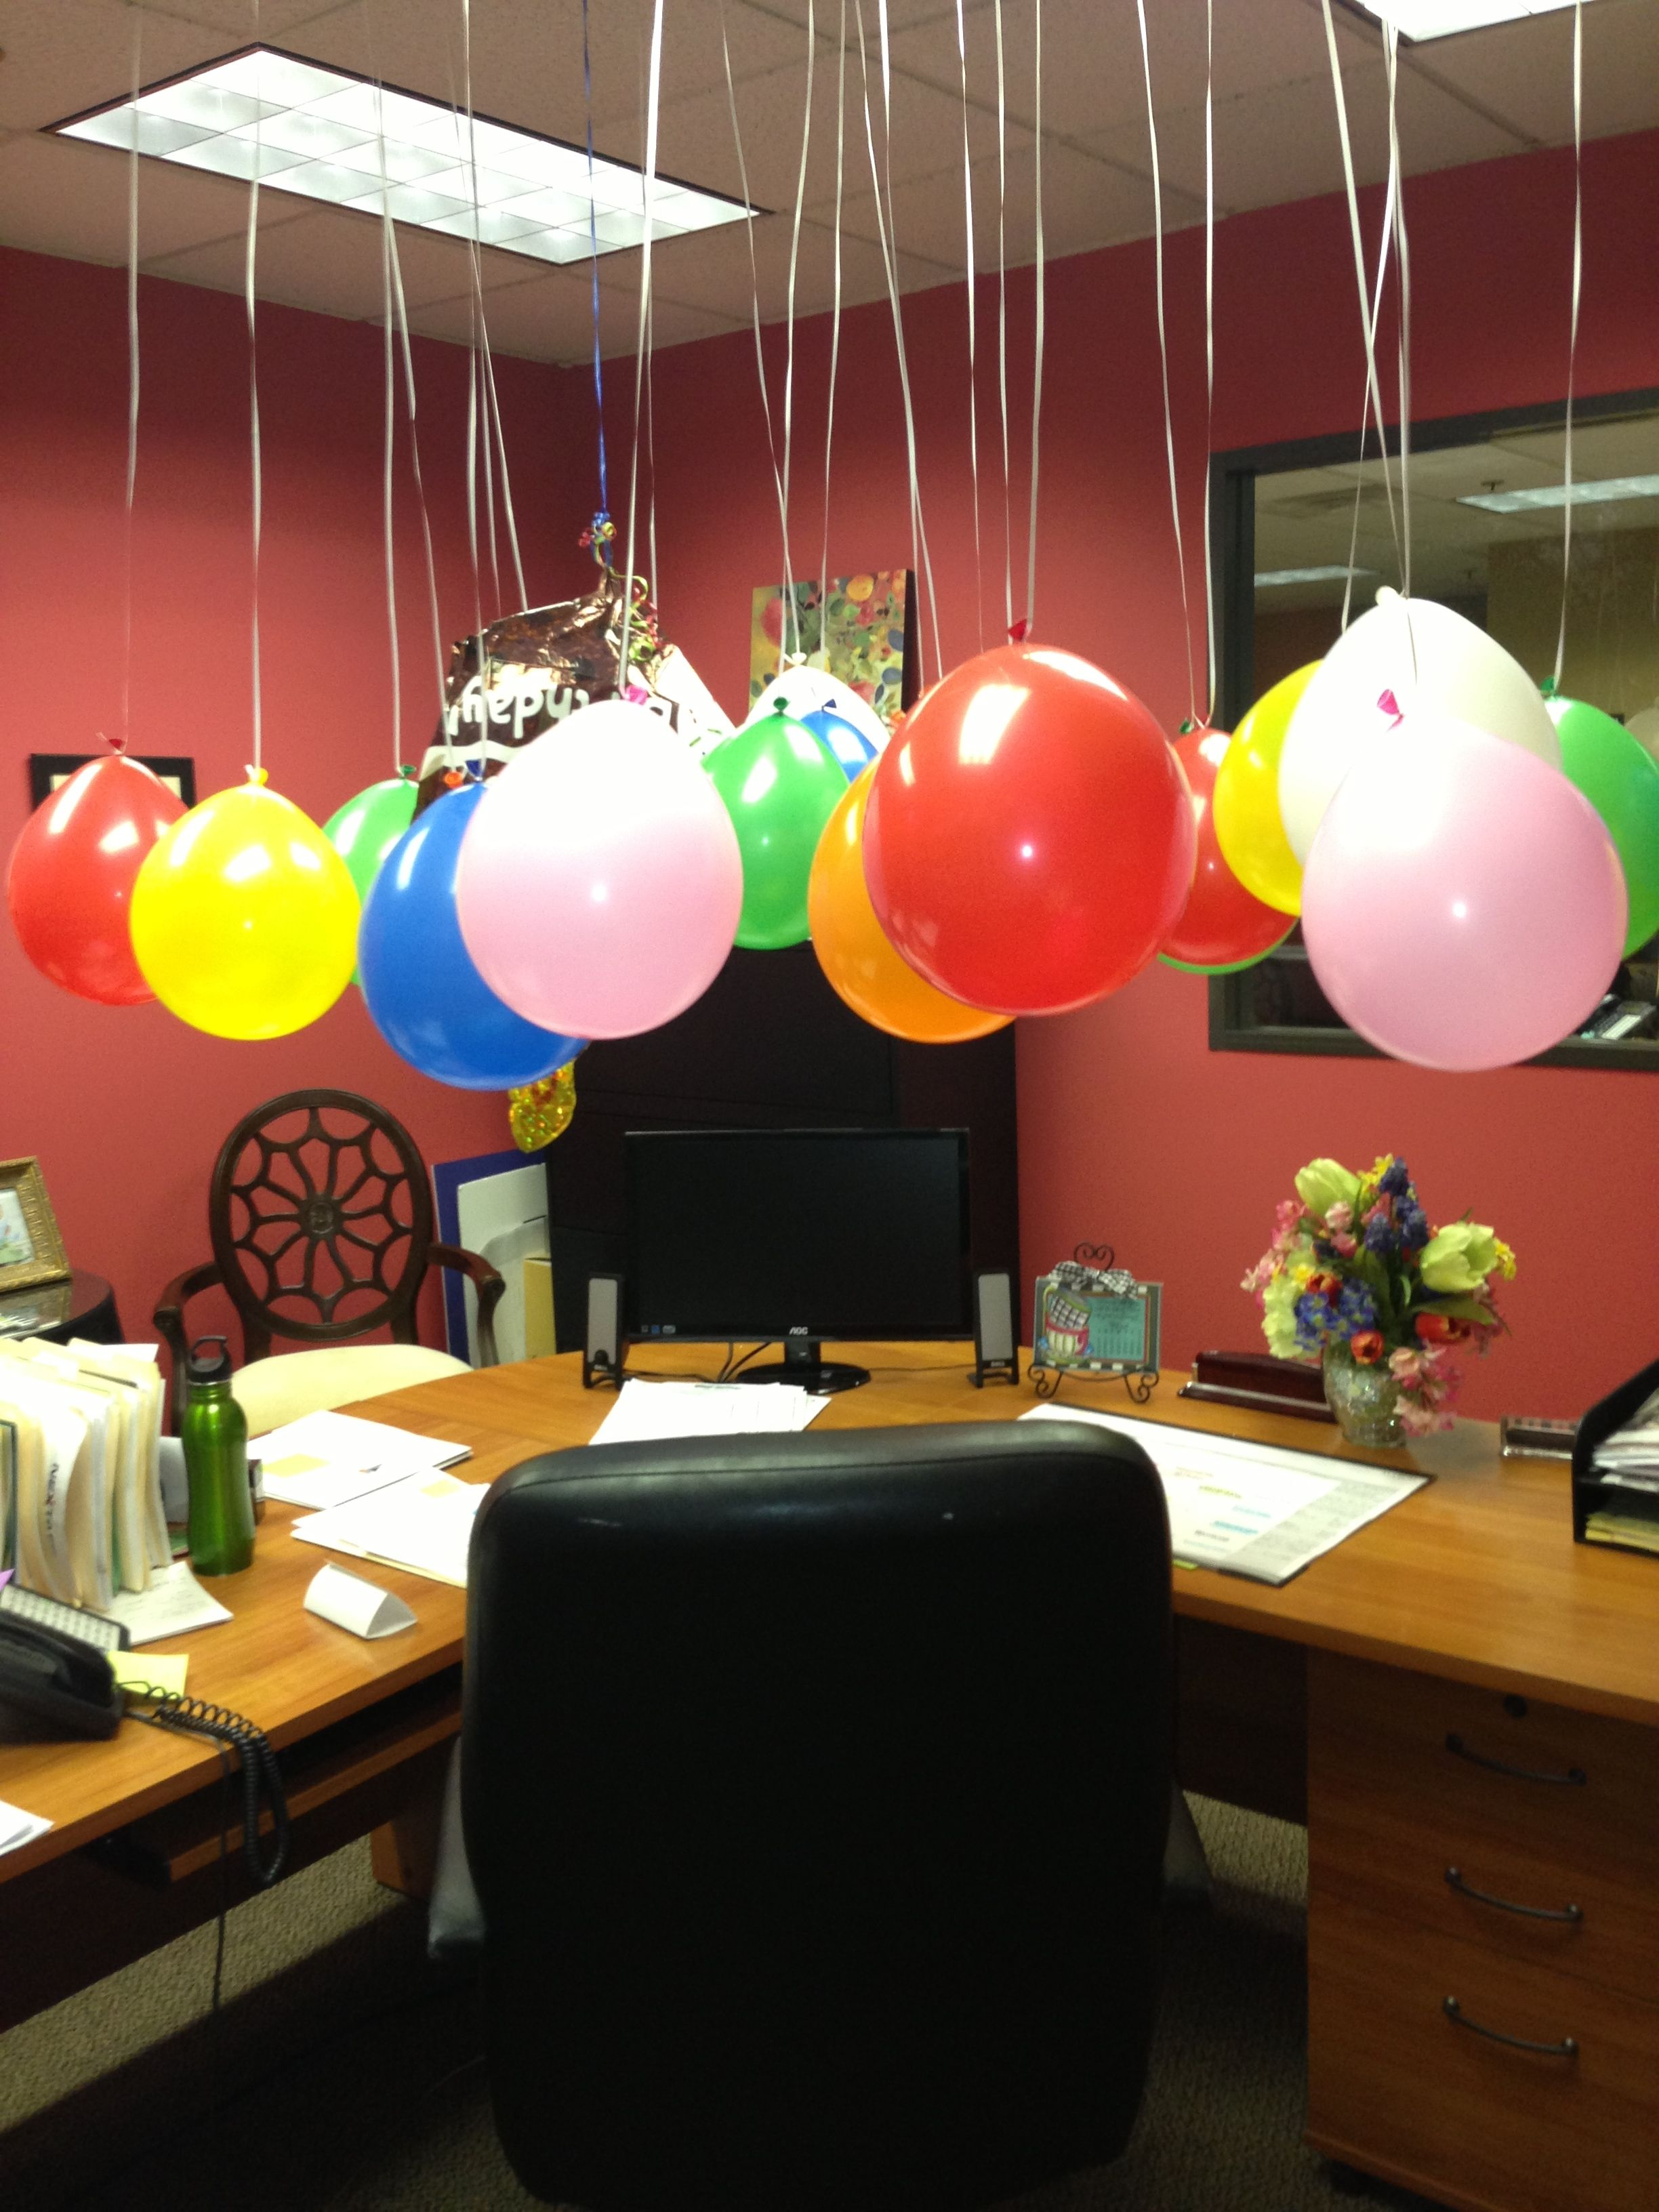 Ideas To Decorate Office Desk For Birthday Office Party Decorations Office Birthday Decorations Office Birthday